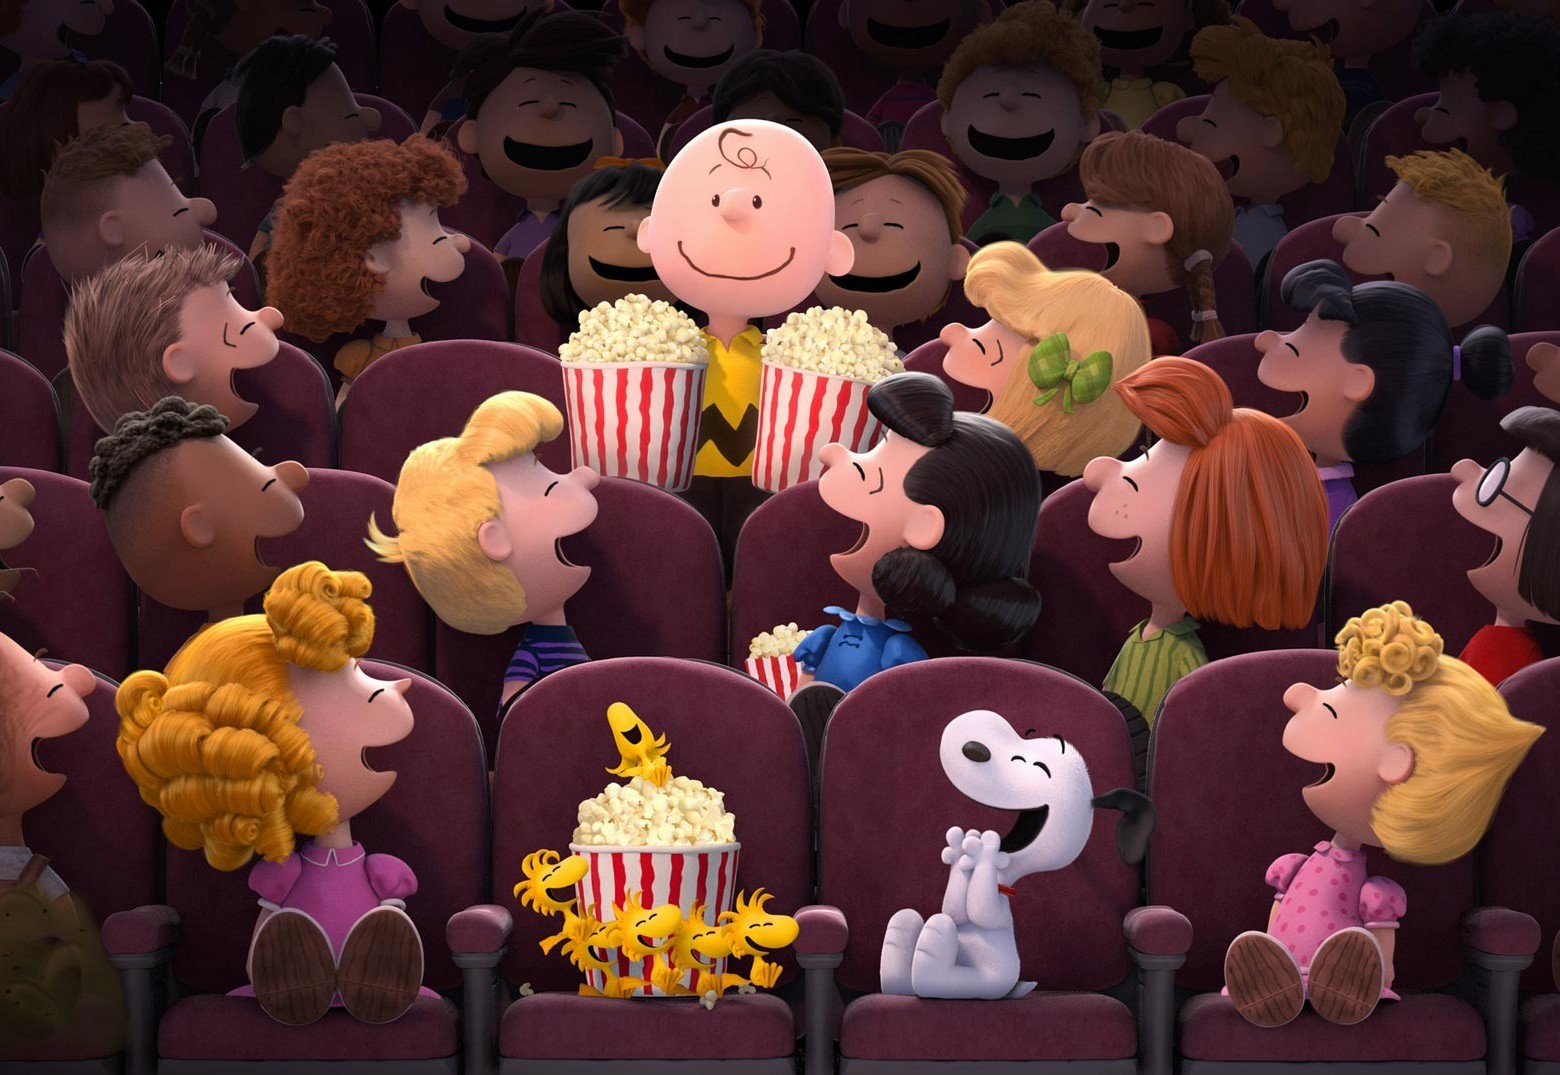 The Wonderful Philosophy of the Peanuts Movie